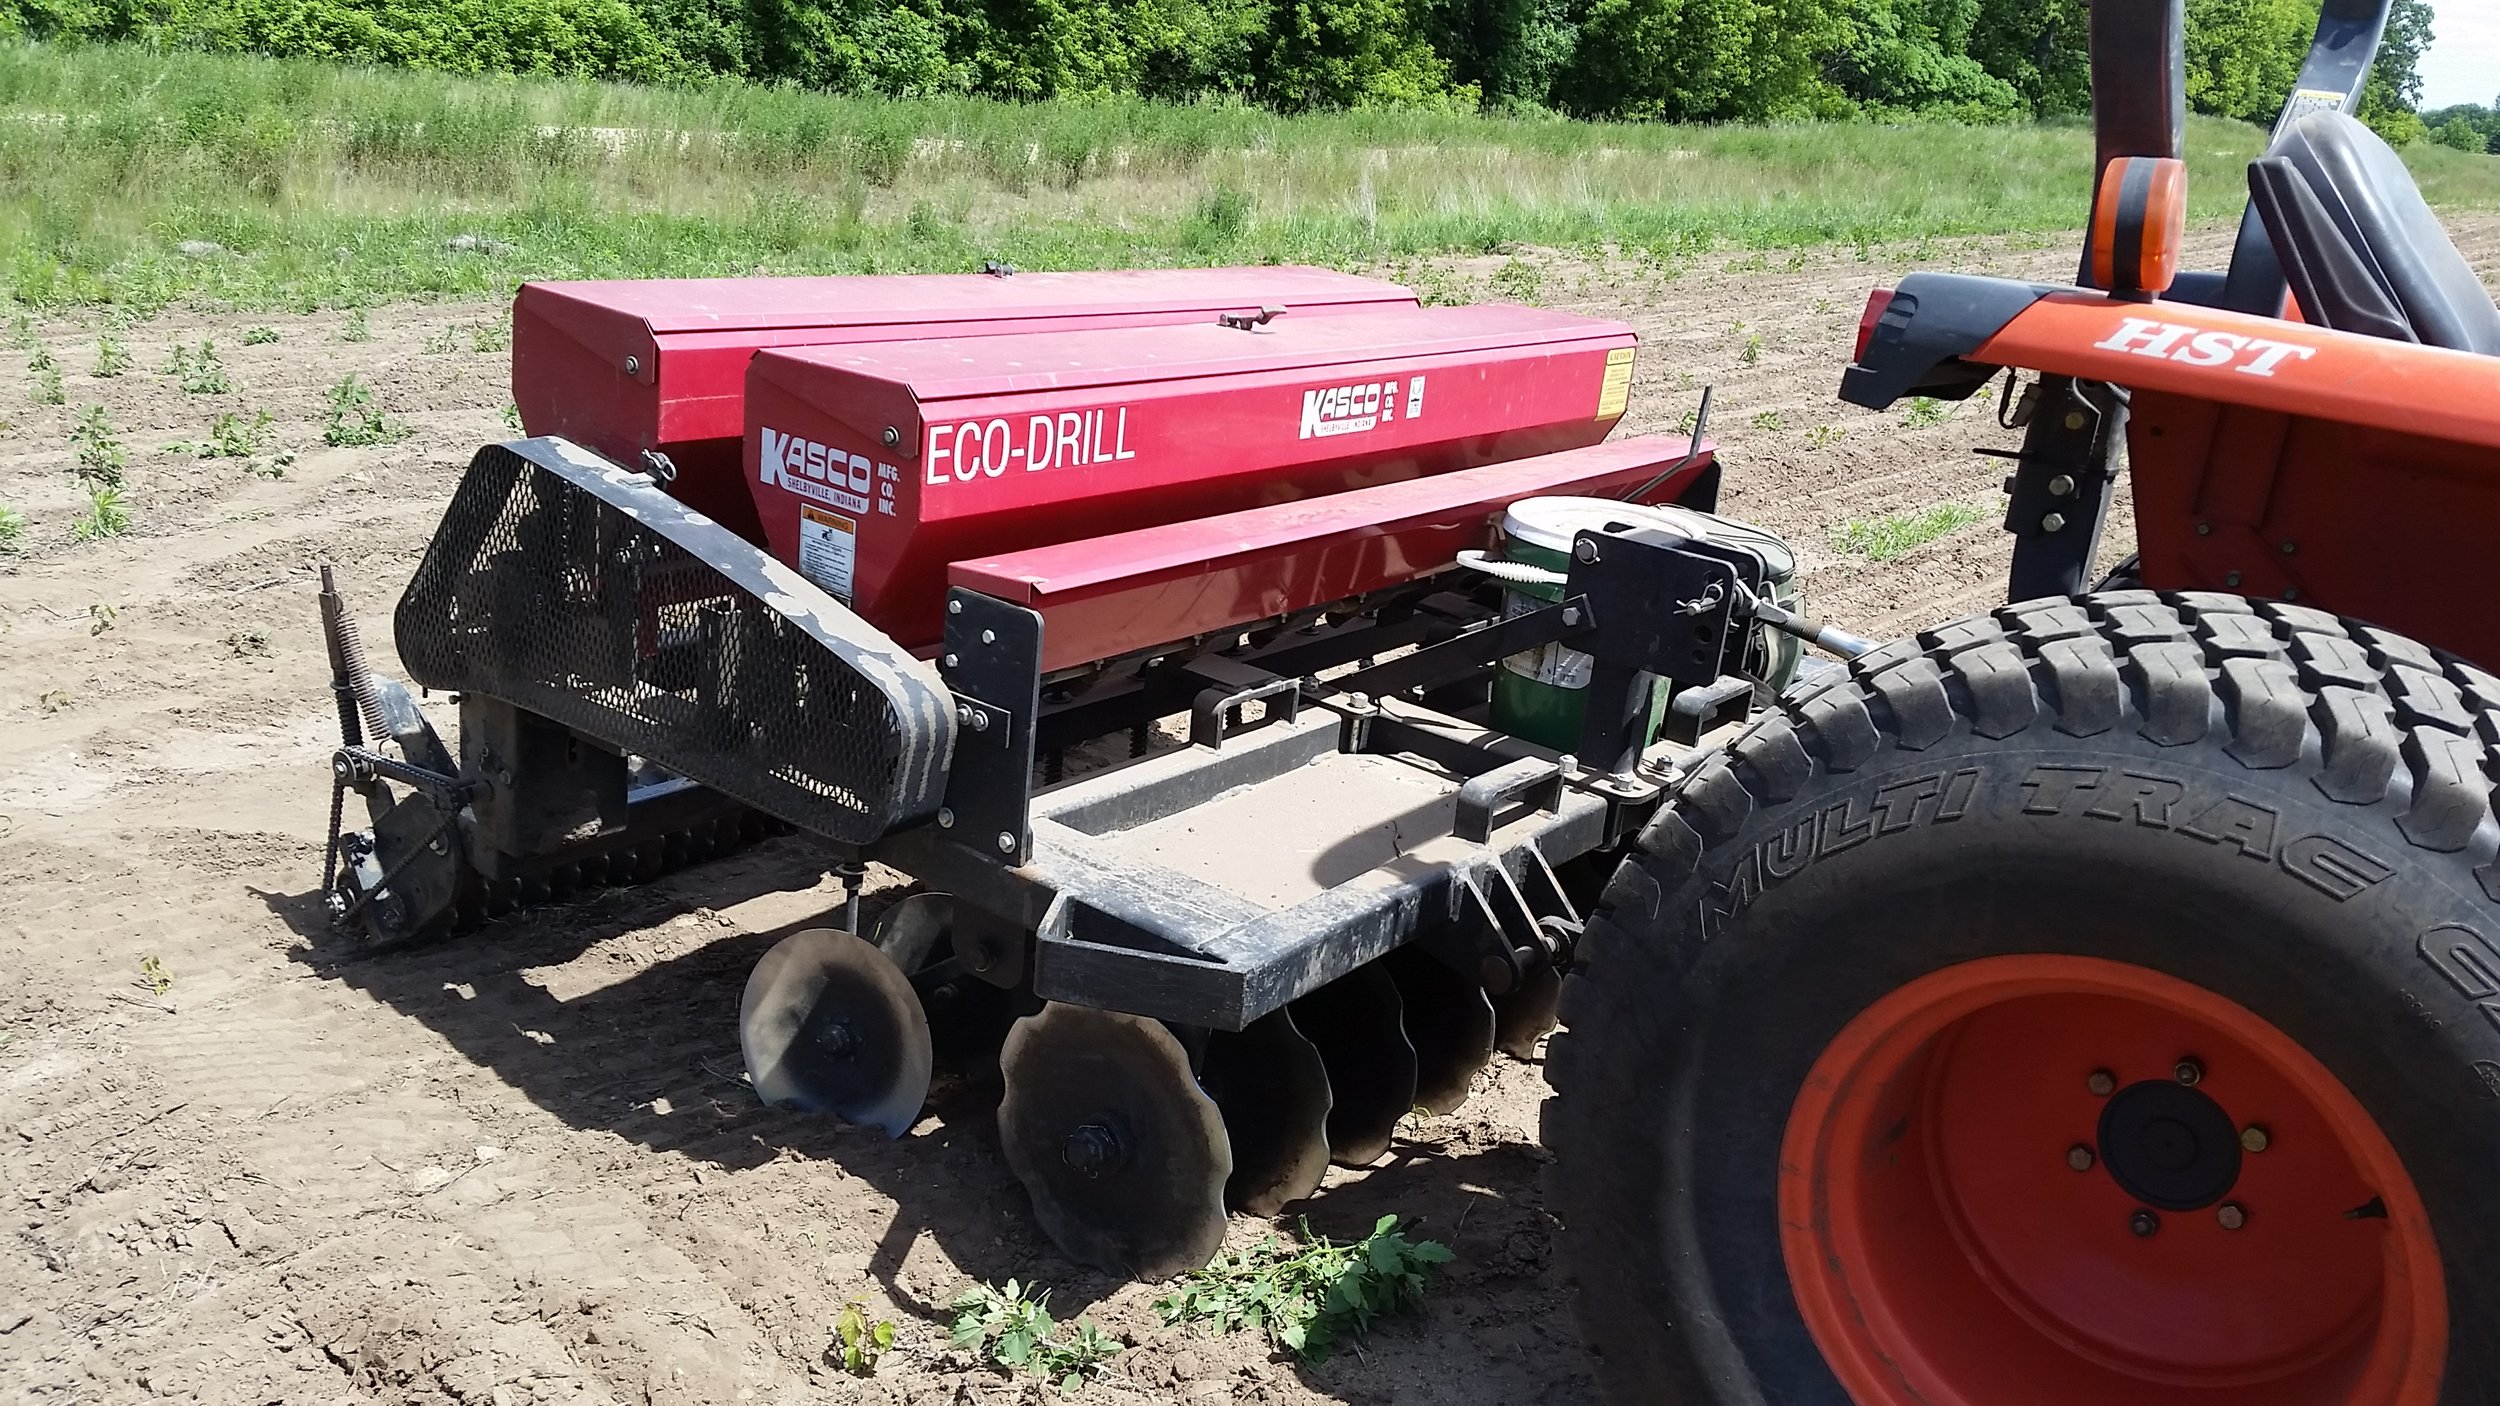 Seeding prairies requires specialized equipment, such as no-till drill seeders. We use the Kasco Eco Drill for smaller, lower, and wetter projects (see above), and a Great Planes no-till drill for CRP seeding and larger projects.